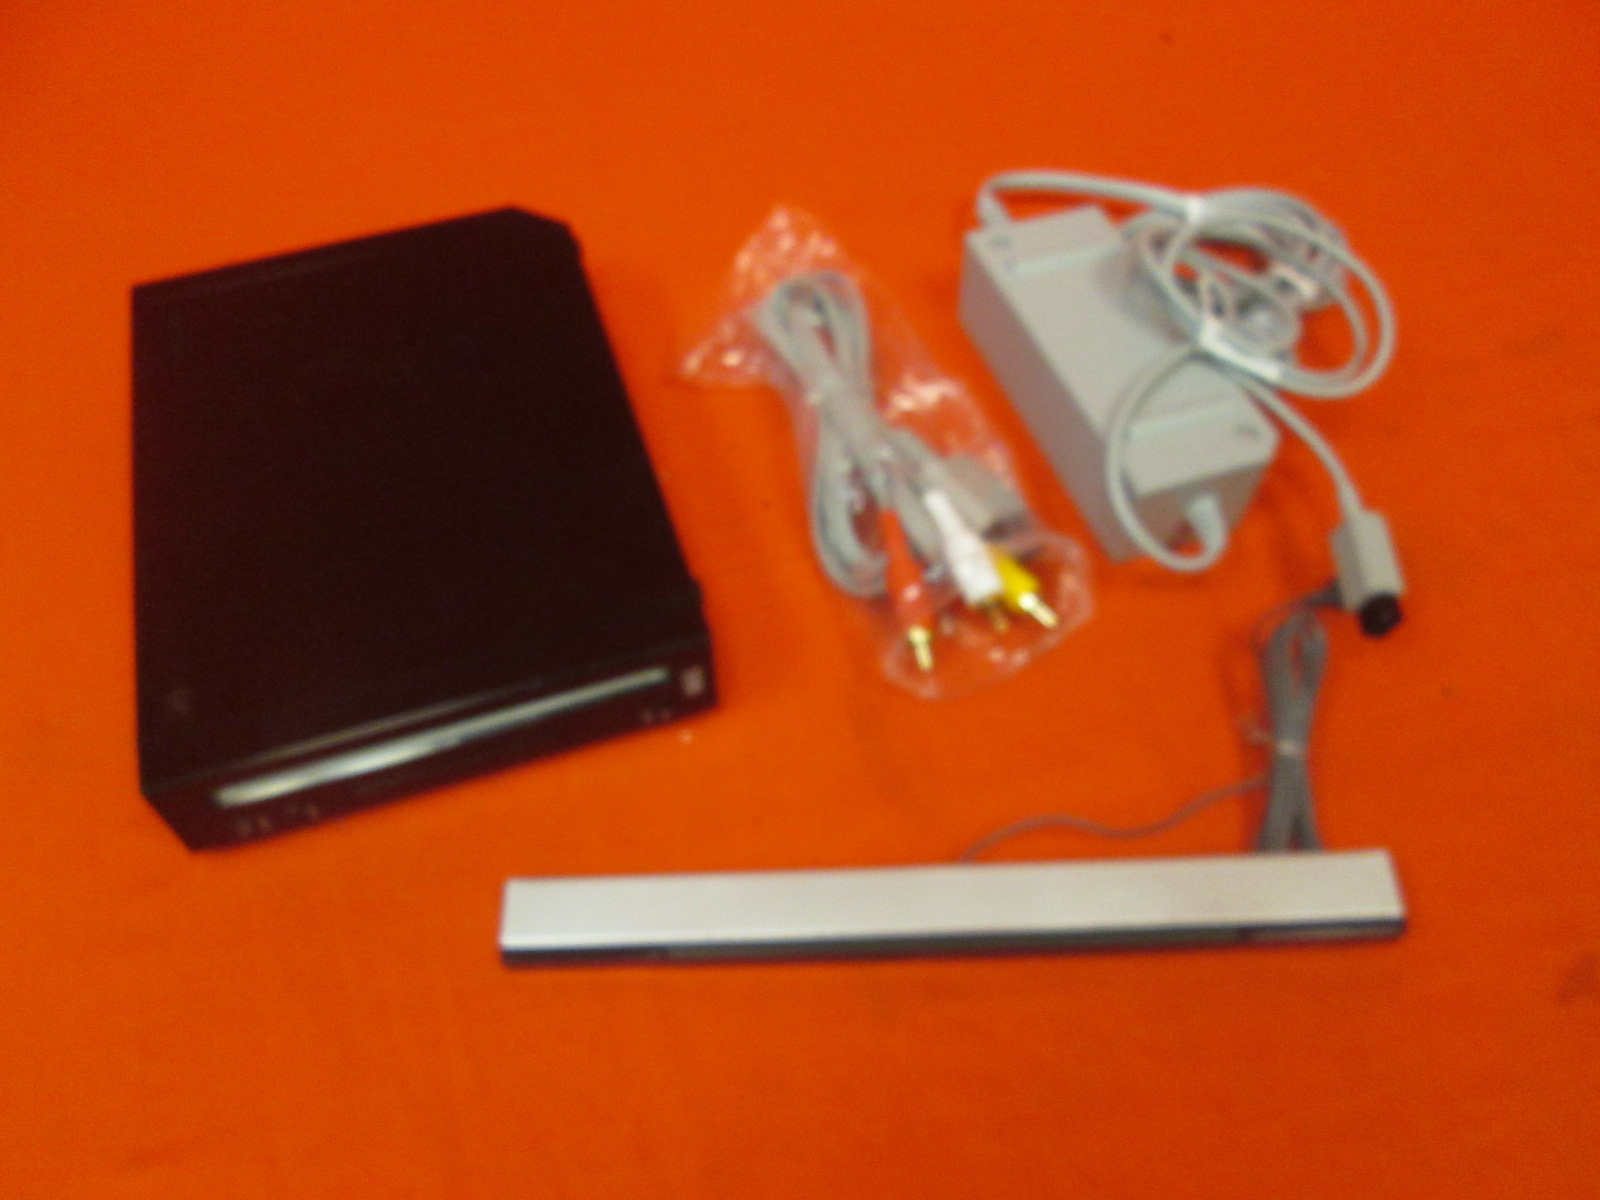 Nintendo Wii Video Game Console Black